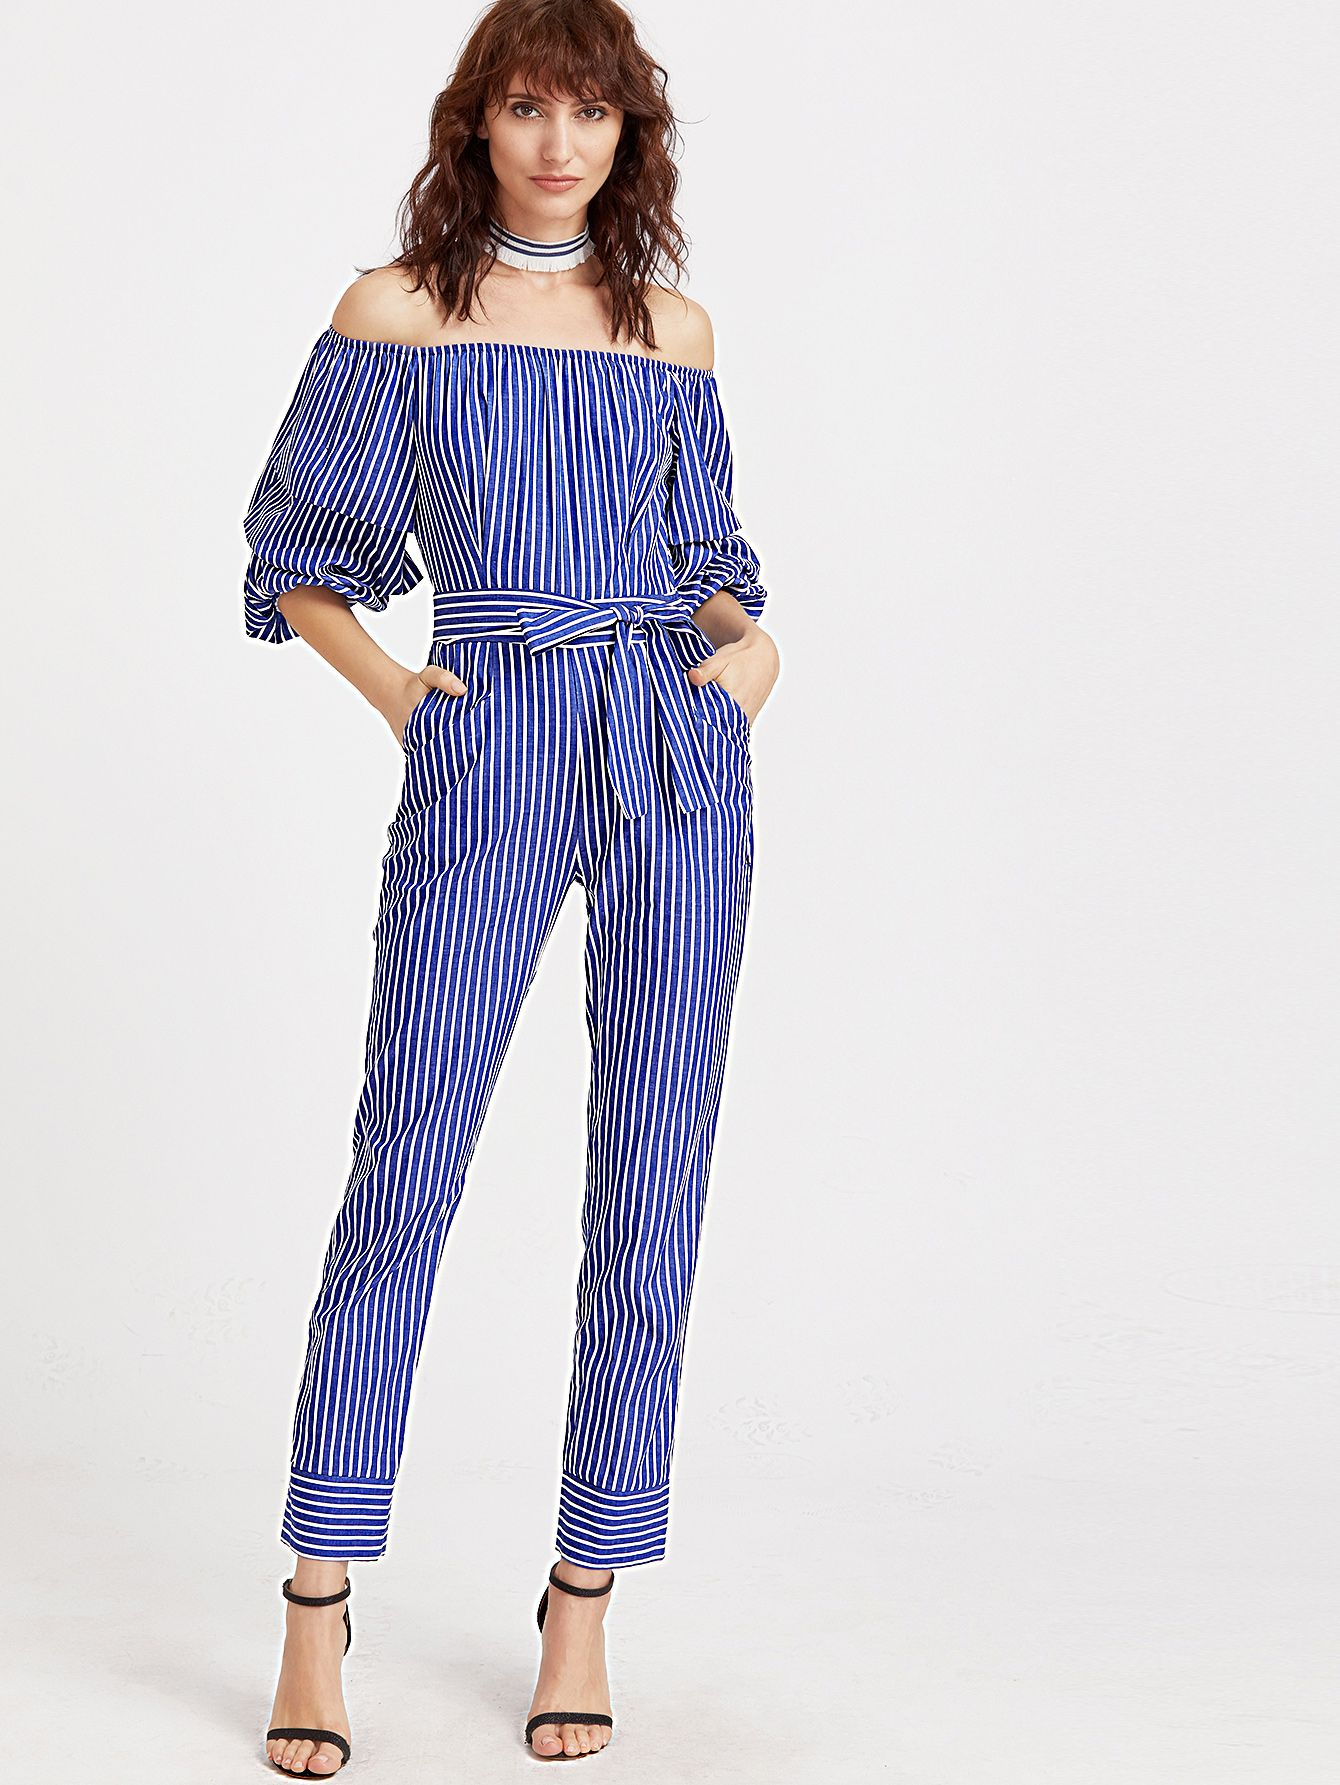 c37a15dd979 Shop Blue And White Striped Billow Sleeve Jumpsuit online. SheIn offers Blue  And White Striped Billow Sleeve Jumpsuit   more to fit your fashionable  needs.